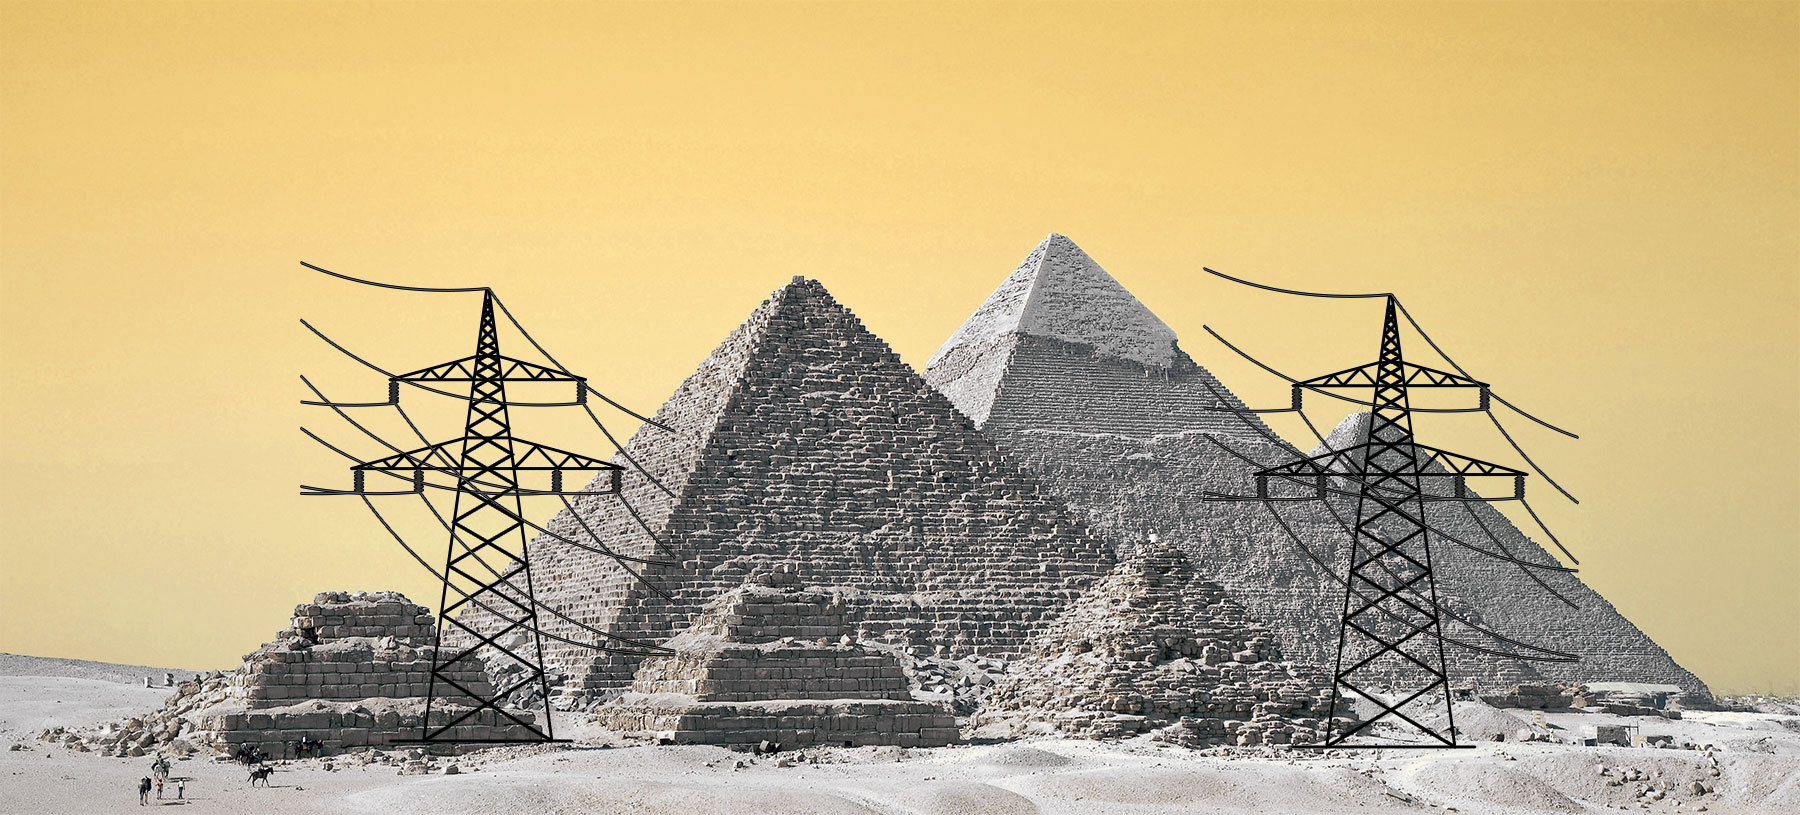 When You Break Down The Theory, The Great Pyramid Of Giza